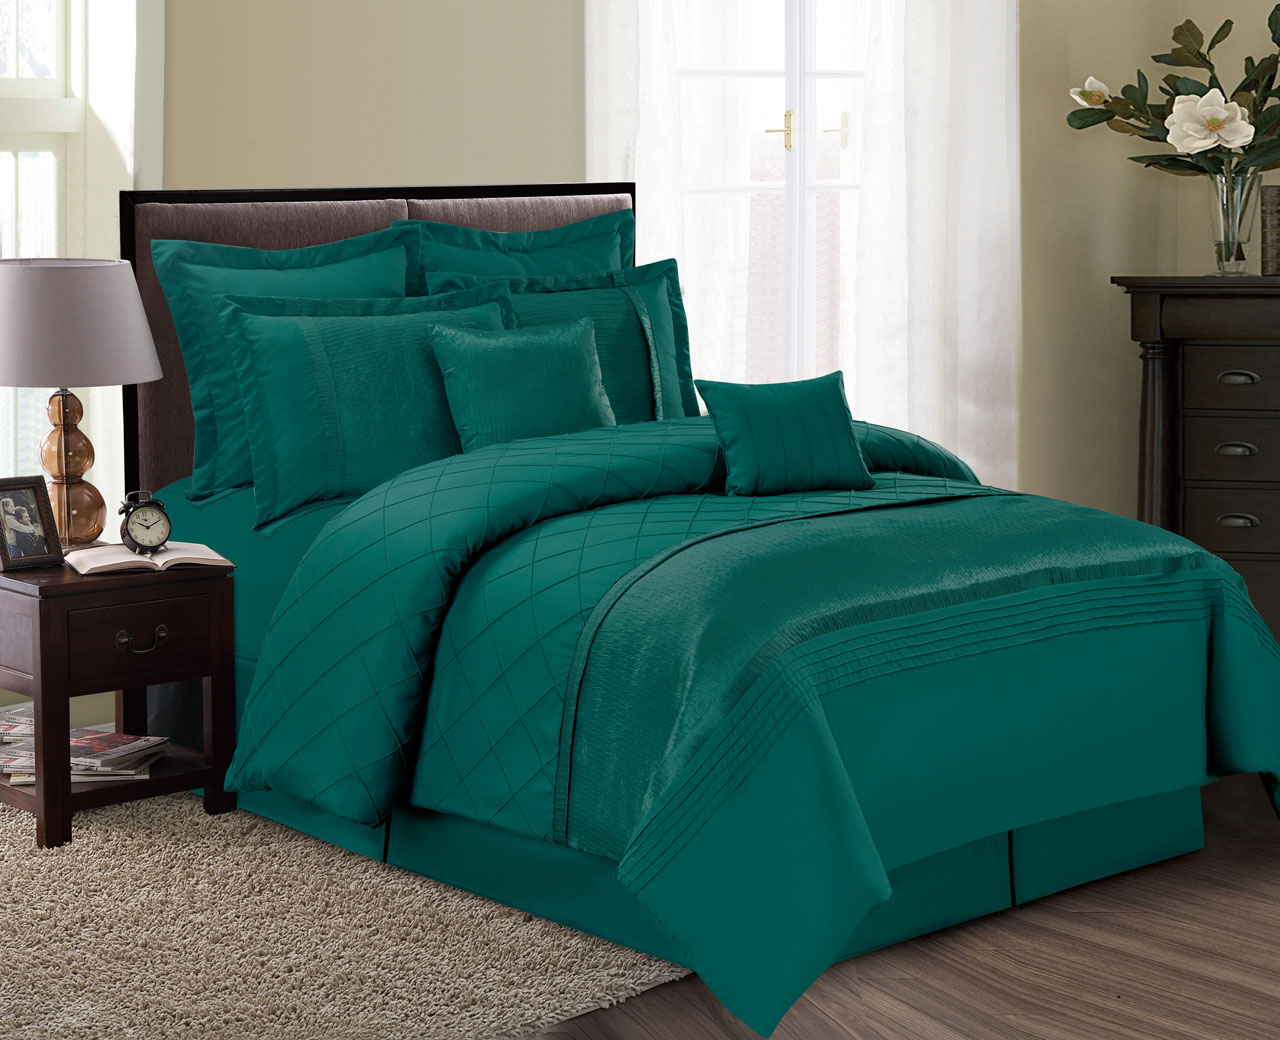 12 Piece Fiona Green Bed In A Bag Set